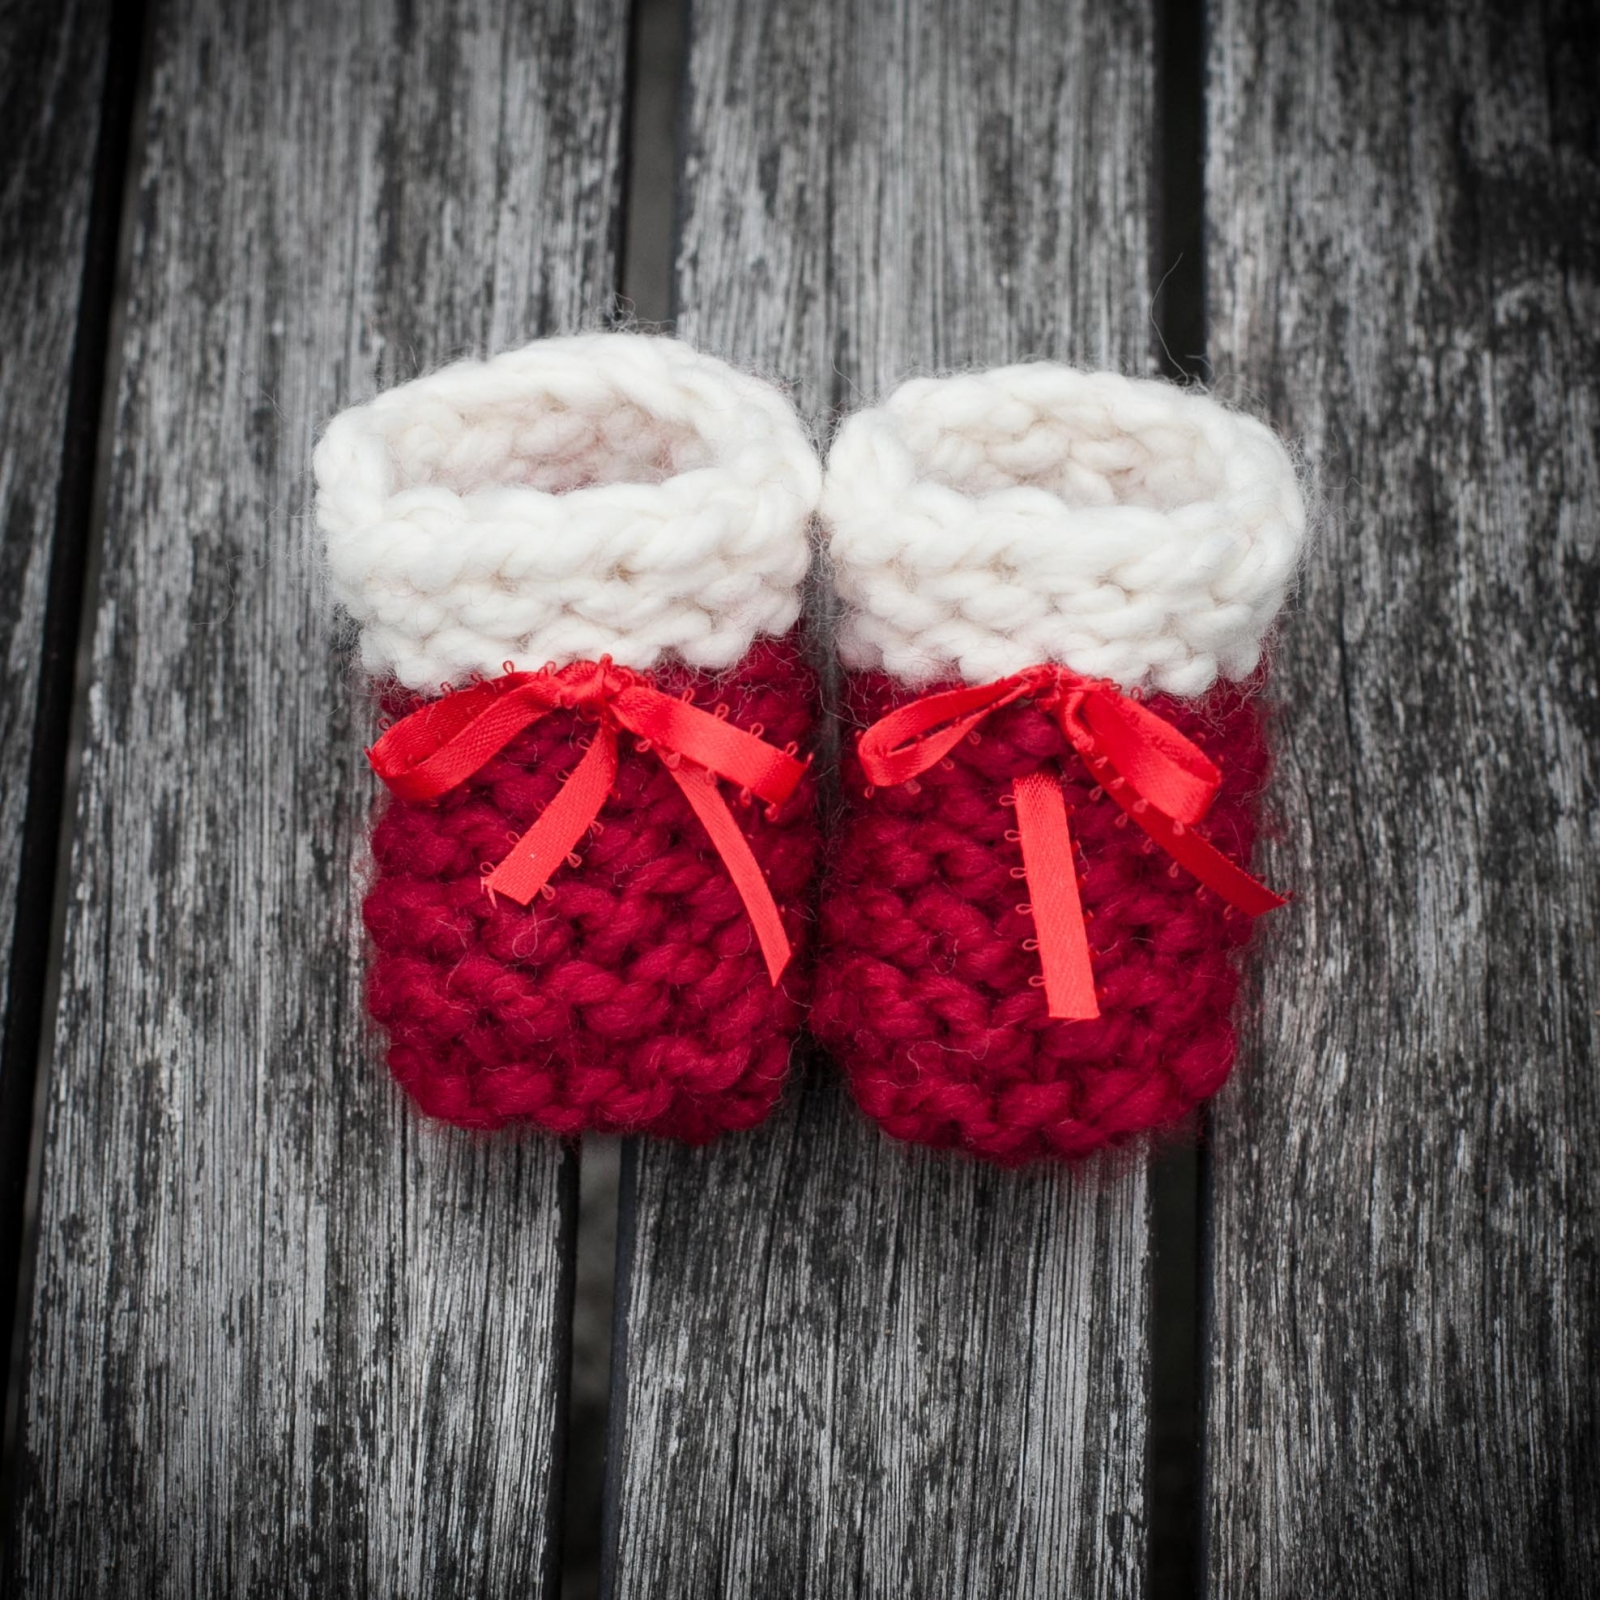 Loom knit baby bootie pattern, knit baby shoes, beginner friendly ...